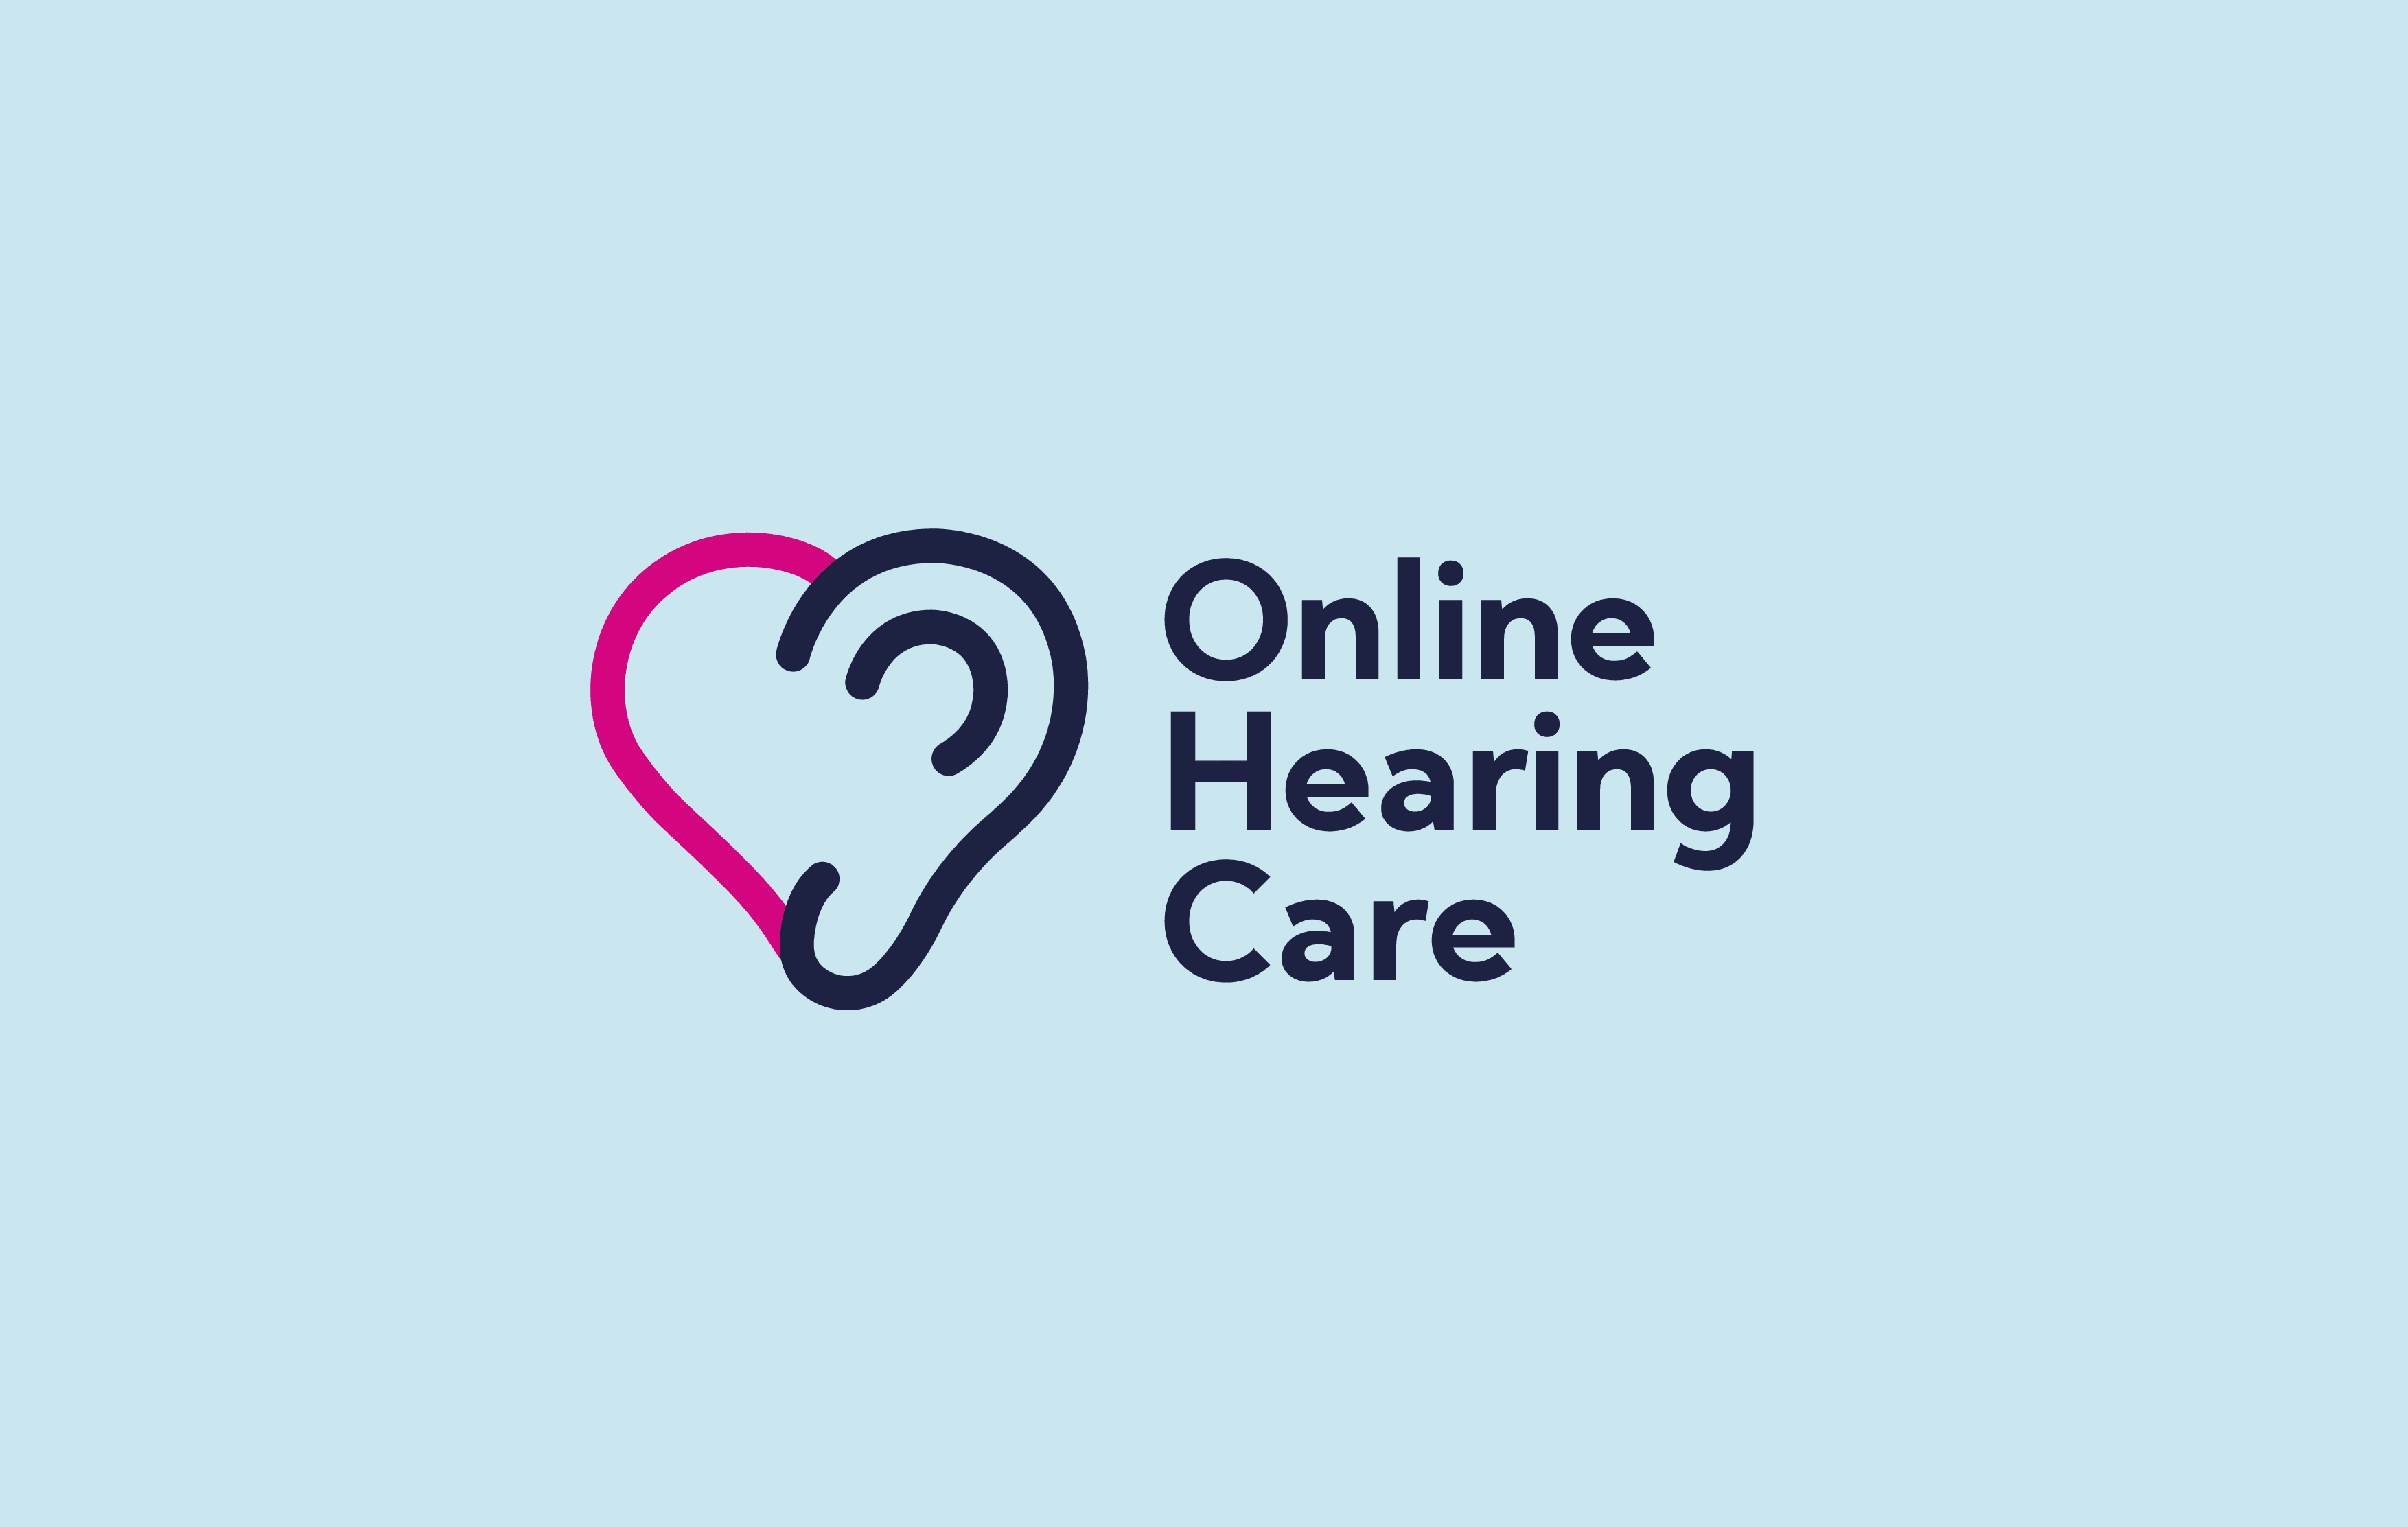 Online Hearing Care